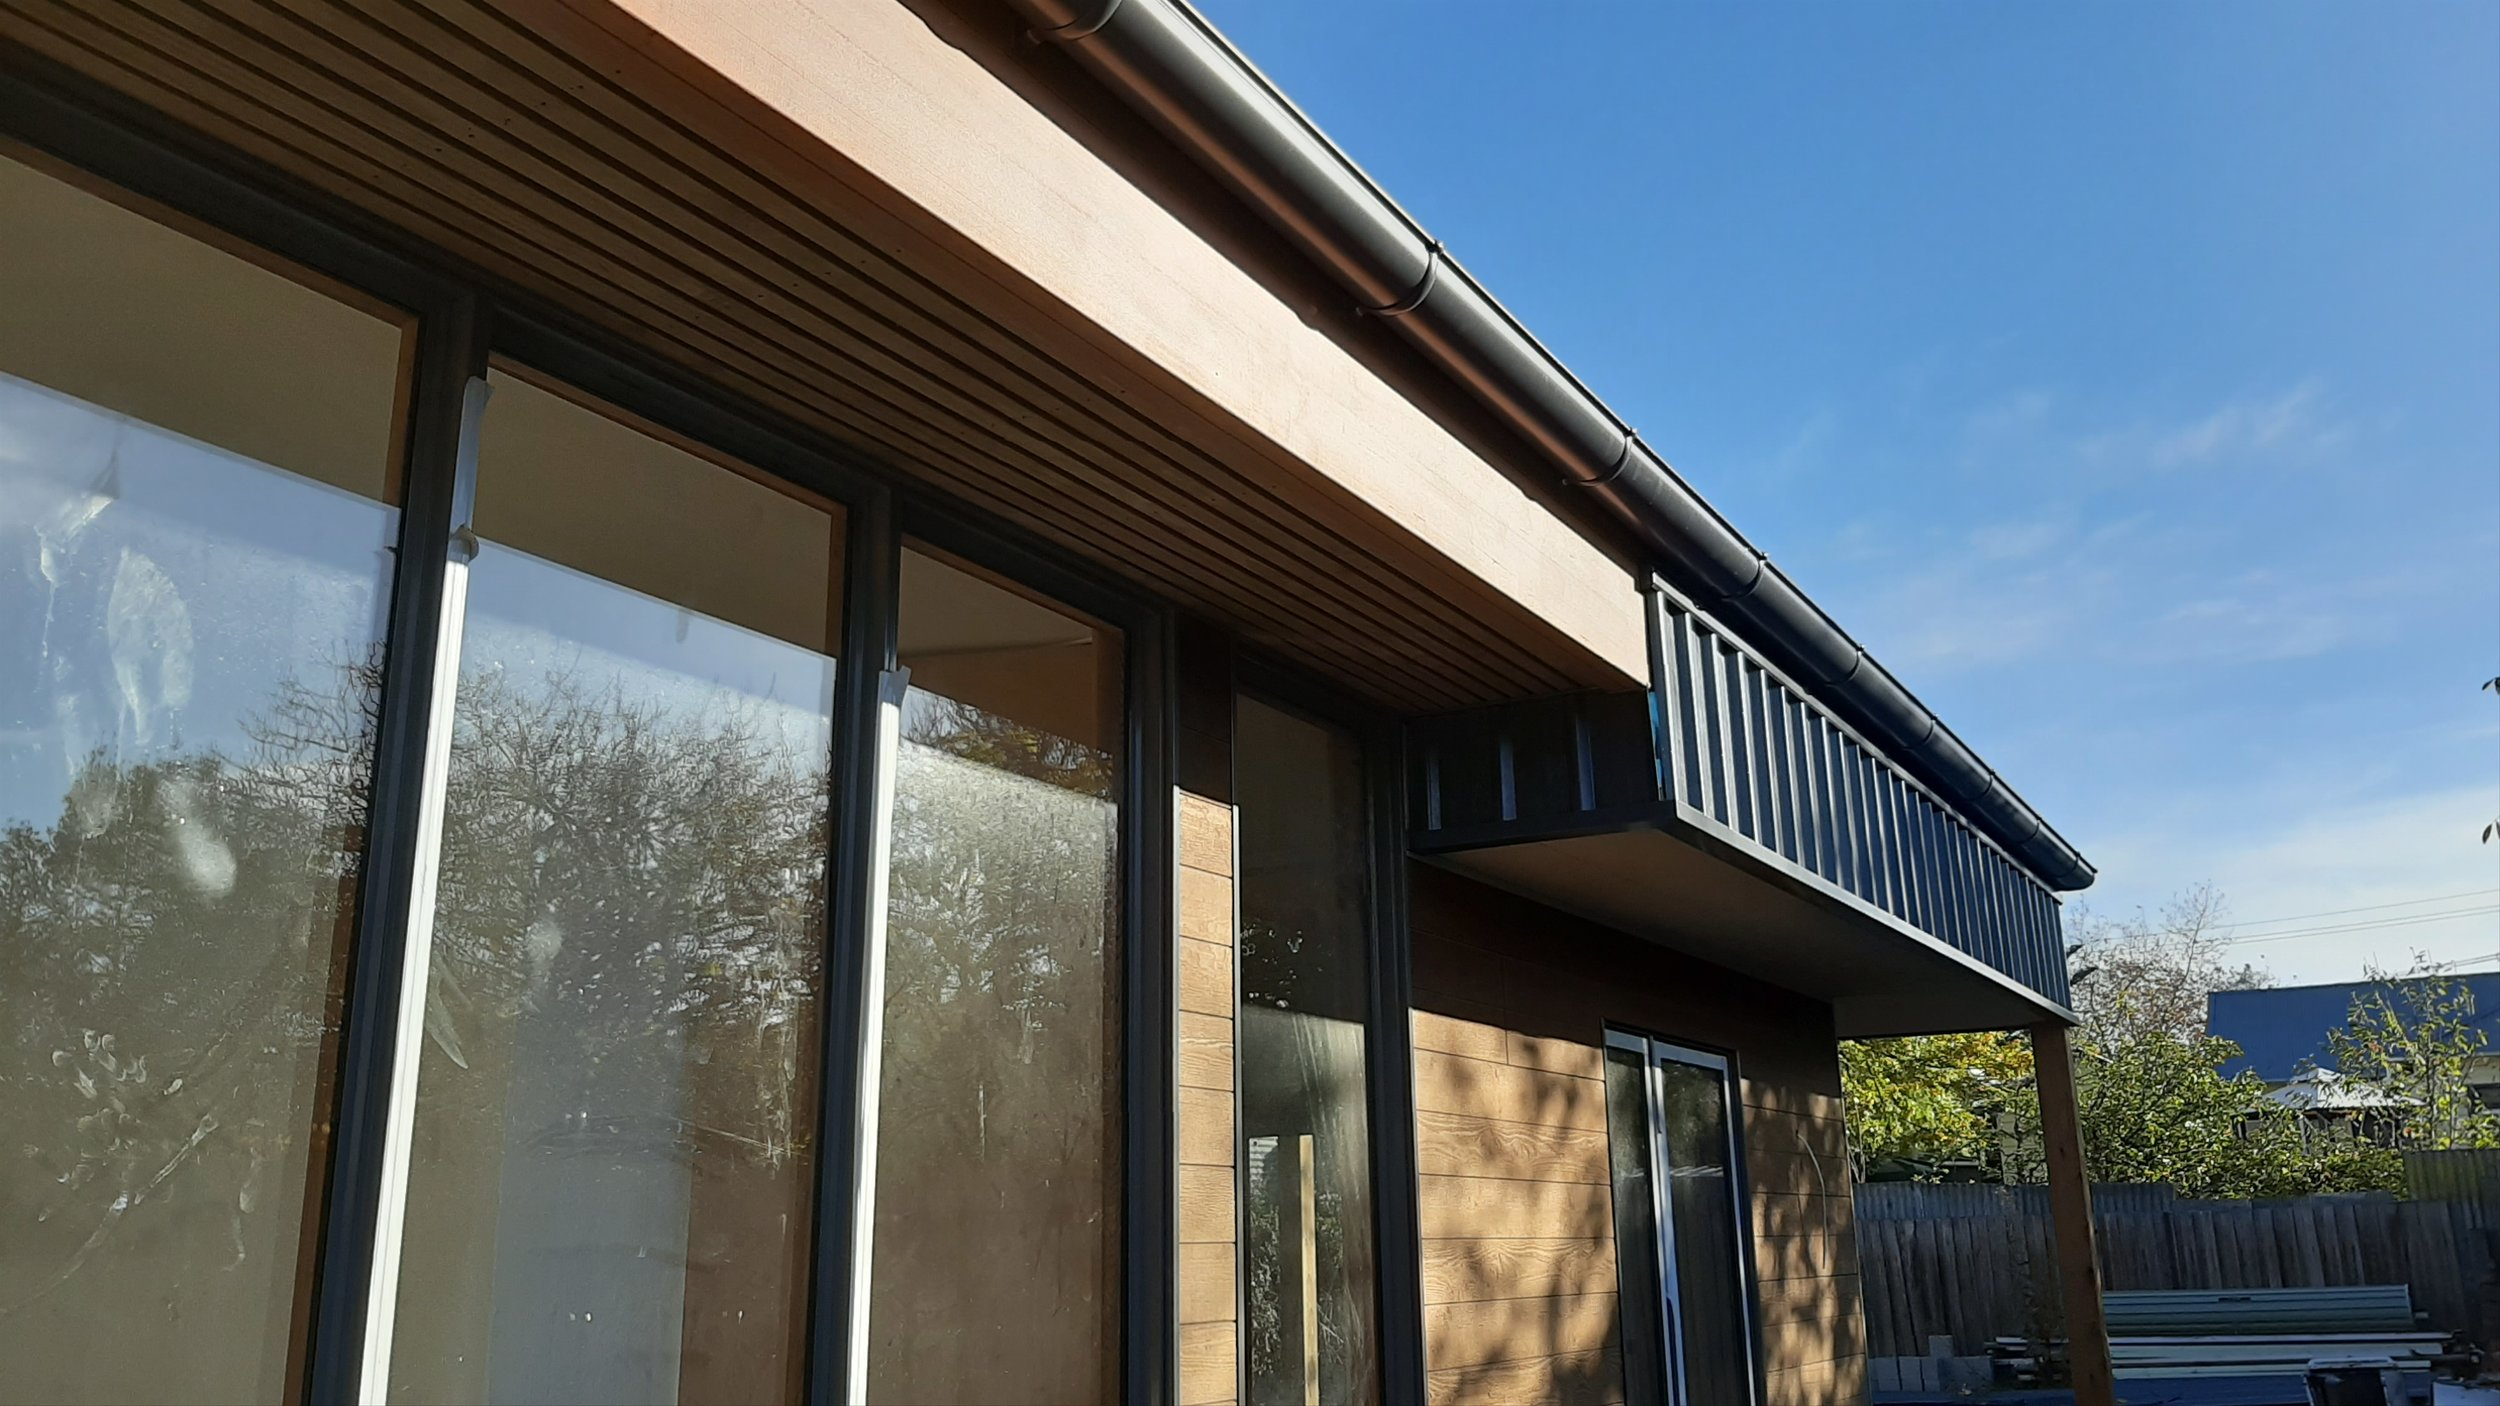 North facing window shading and roof ventilation grille.